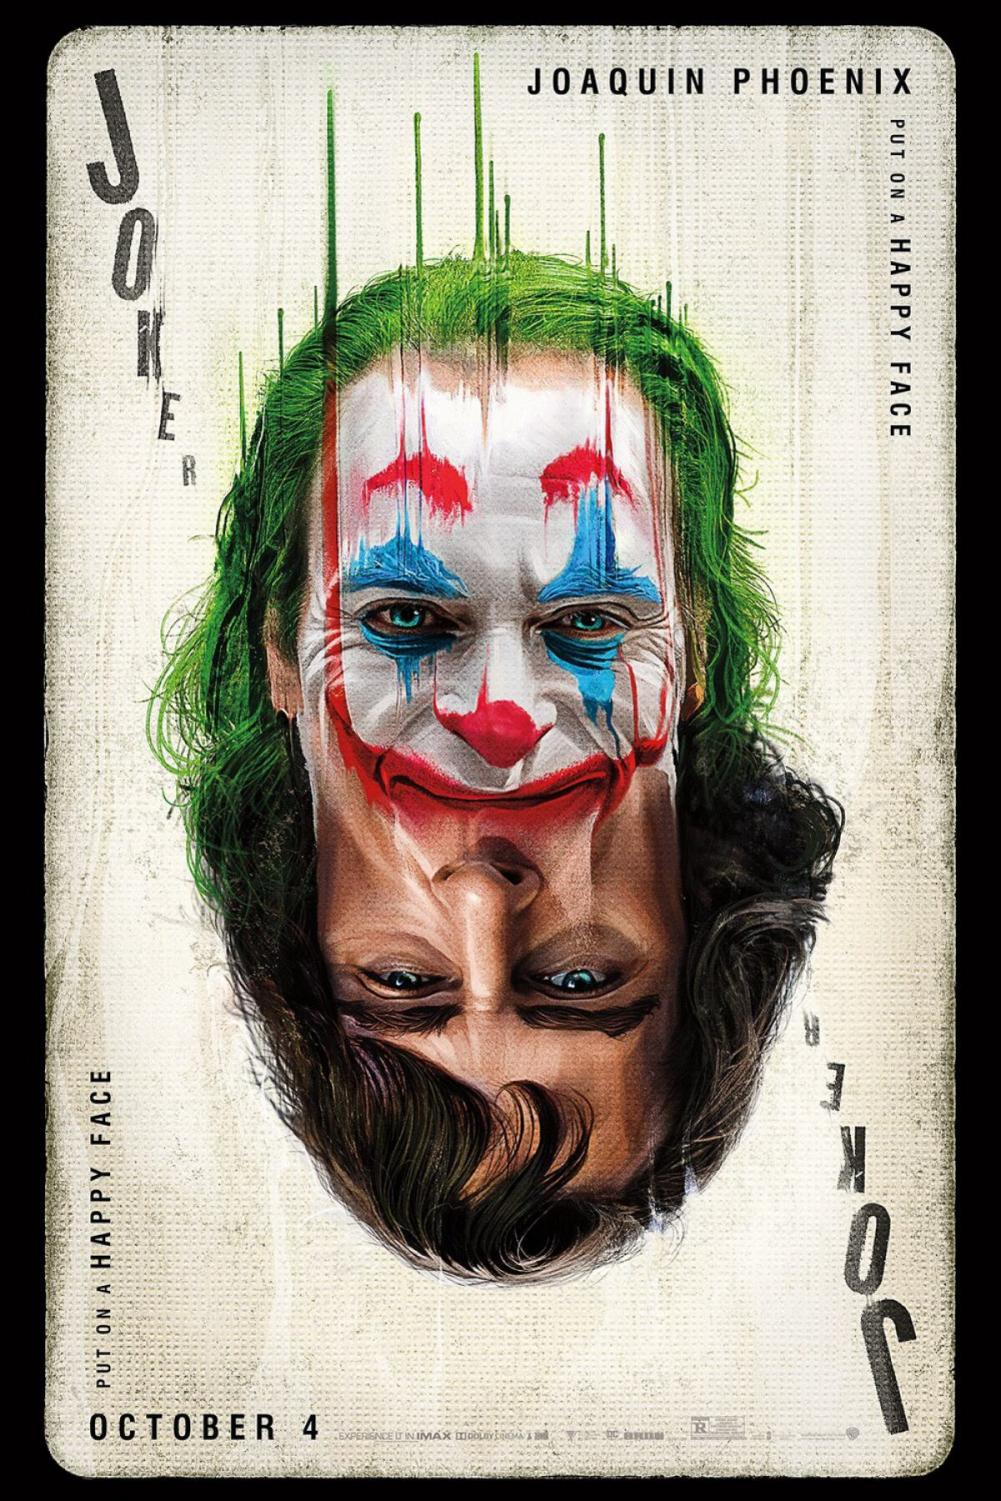 The final poster for Joker released two weeks before the film's release. The new film, based on the iconic DC supervillain of the same name, stars Joaquin Phoenix, Robert De Niro, Zazie Beetz, and Frances Conroy. Directed by Todd Phillips (War Dogs), the film tells the tale of failed stand-up comedian Arthur Fleck who, after society constantly rejects and neglects him, becomes a symbol of chaos and unrest in a 1980's Gotham City.